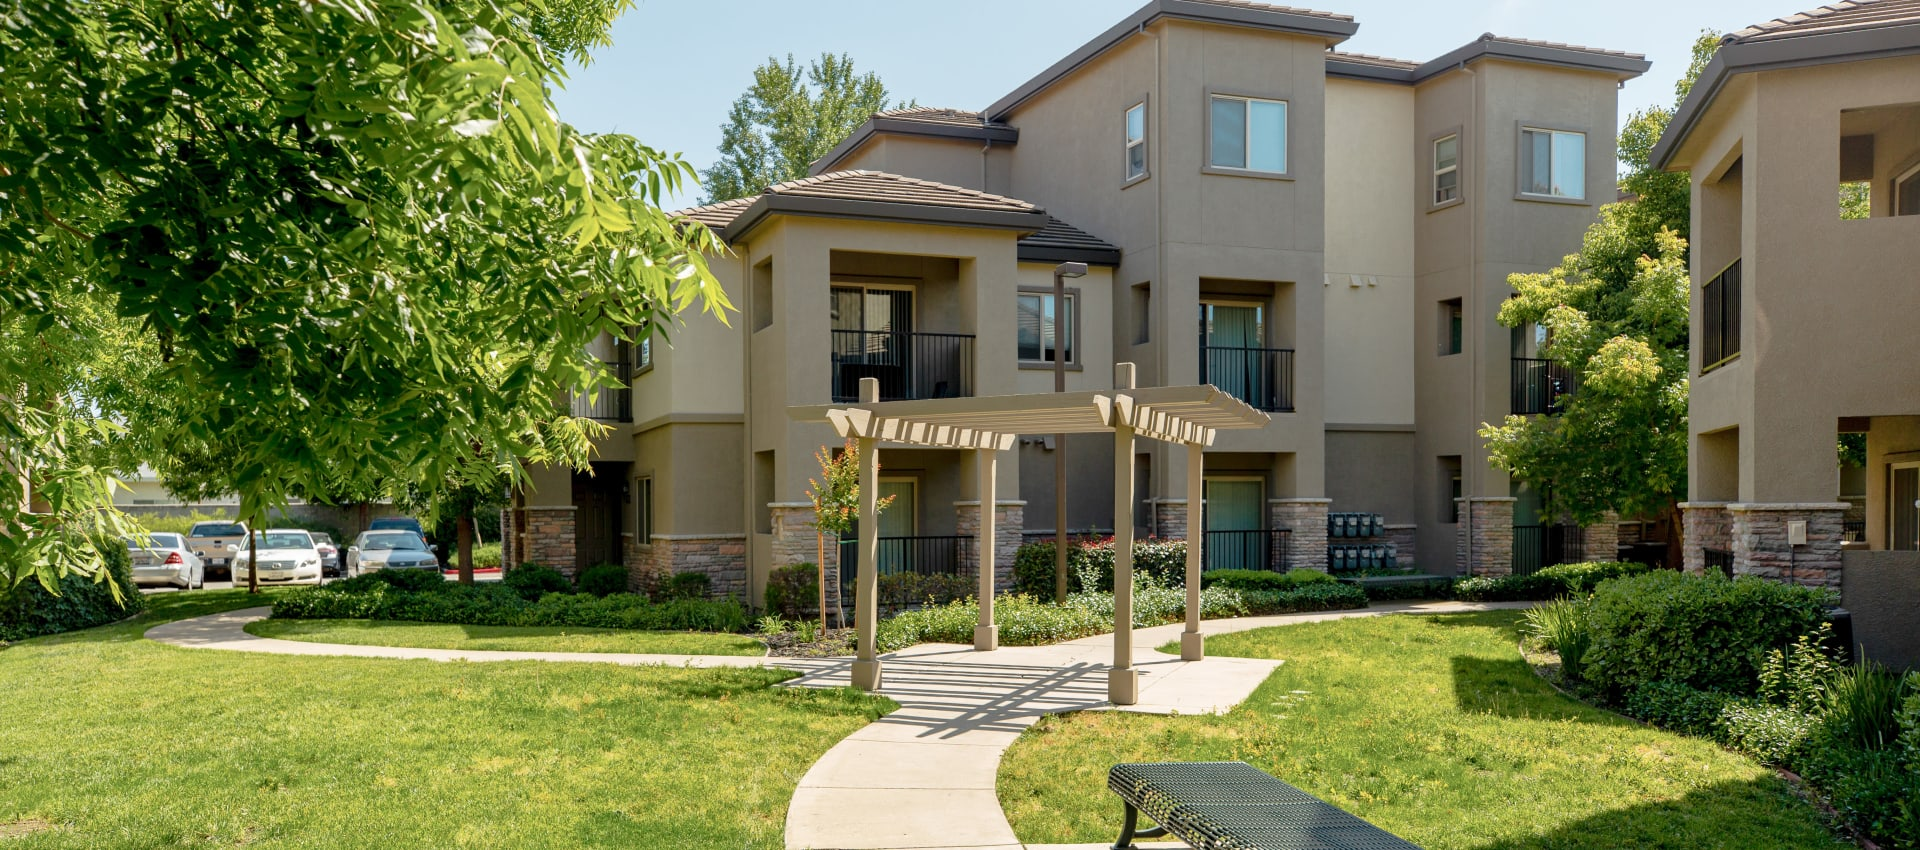 Apartments entry at Wolf Ranch Condominium Rentals in Sacramento